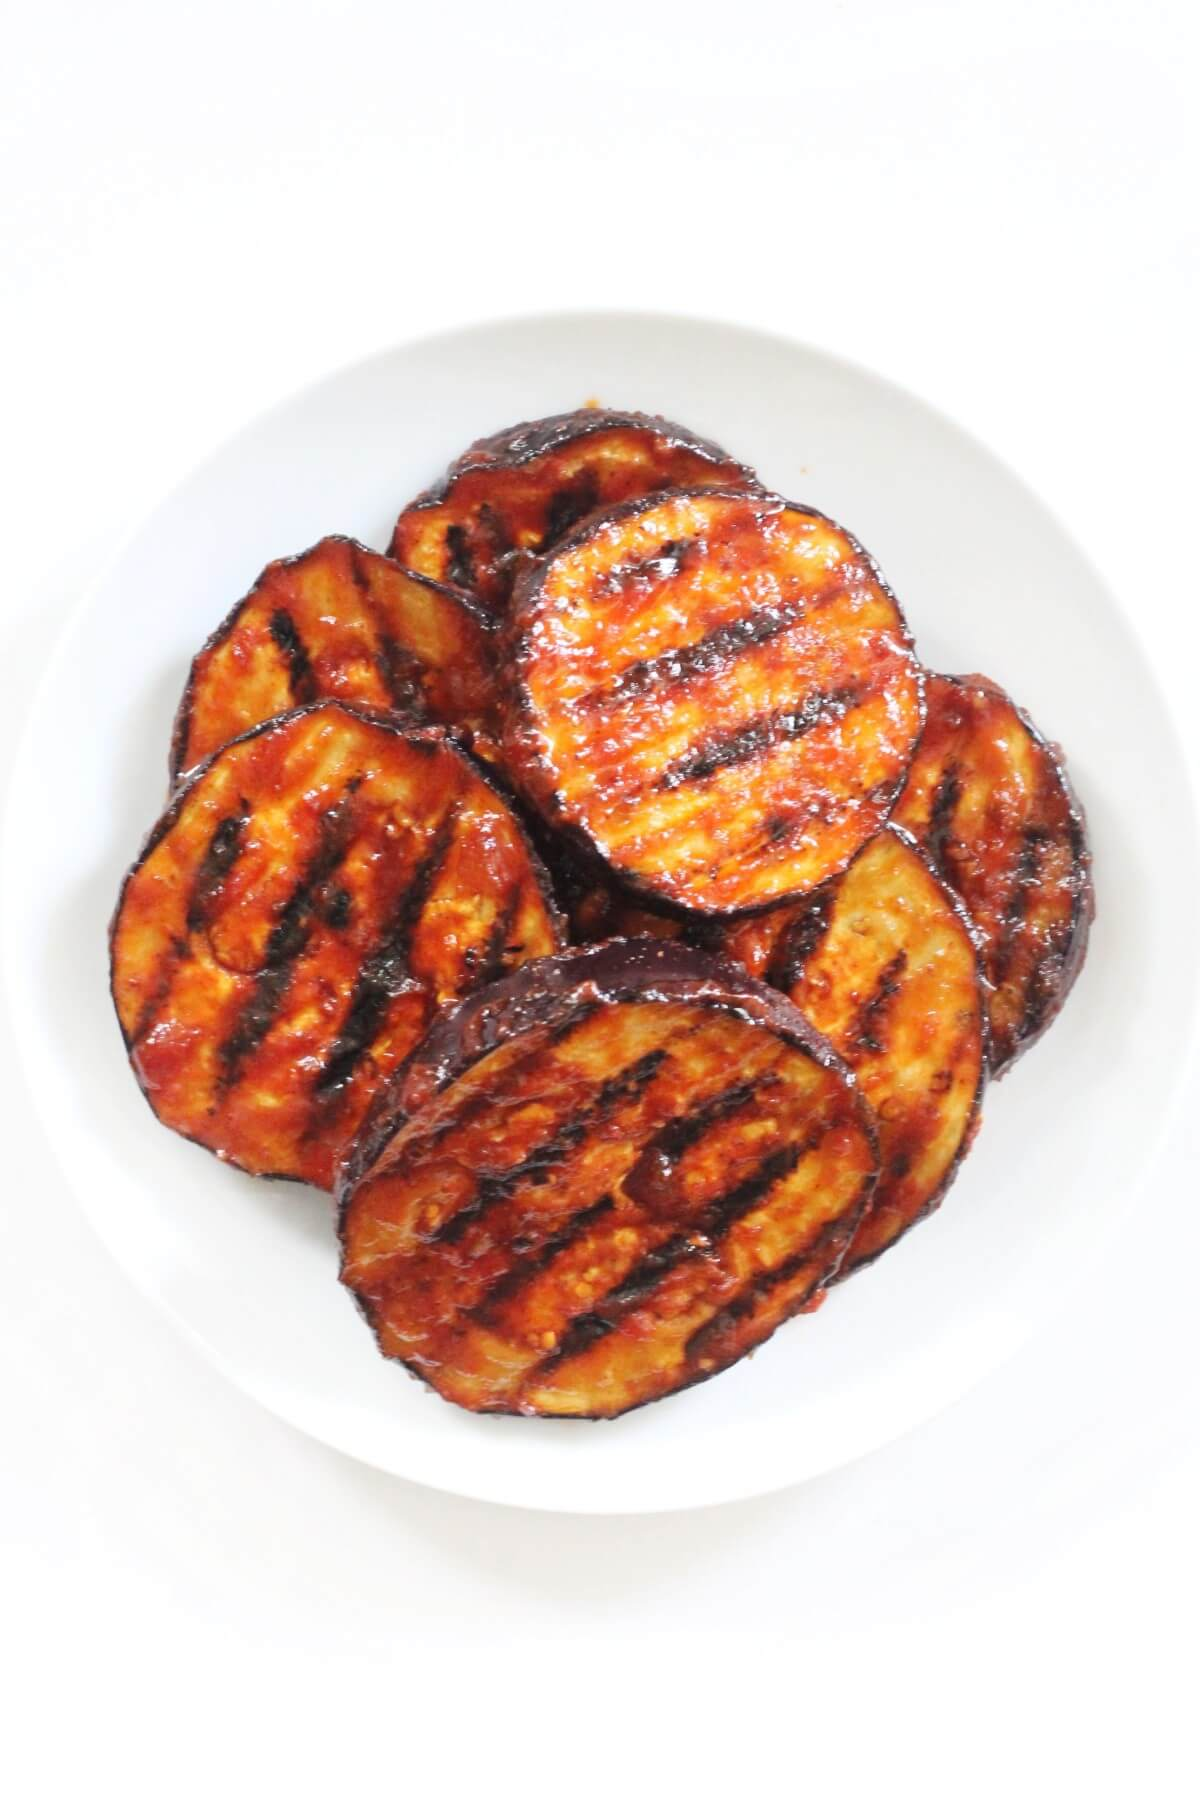 centered overhead view of plate of bbq grilled eggplant slices